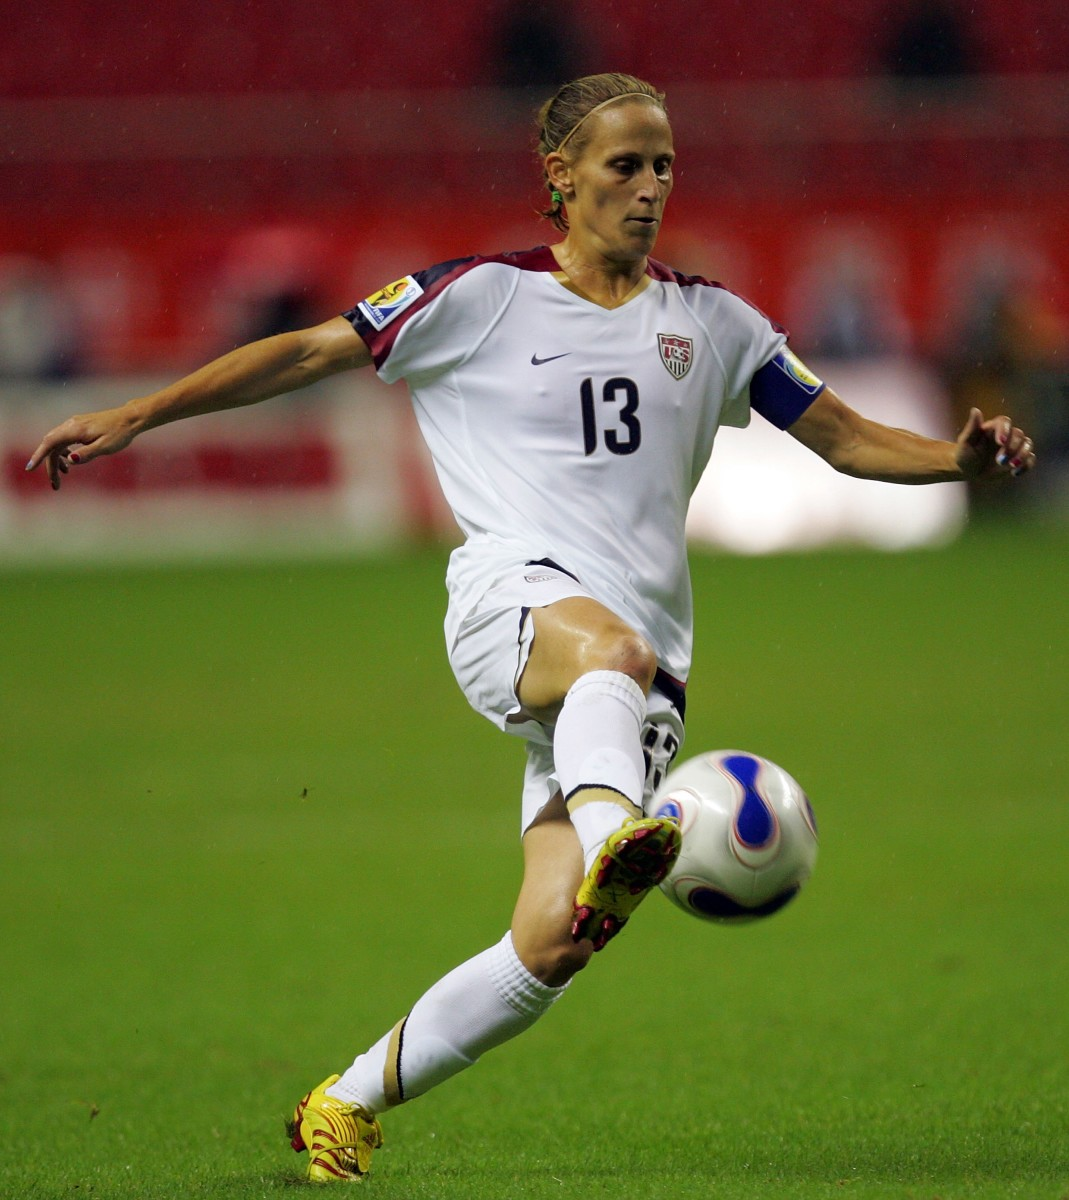 Kristine Lilly of U.S. moves the ball against Nigeria during the FIFA Women's World Cup 2007 Group B match at Shanghai Hongkou Football Stadium on September 18, 2007 in Shanghai, China